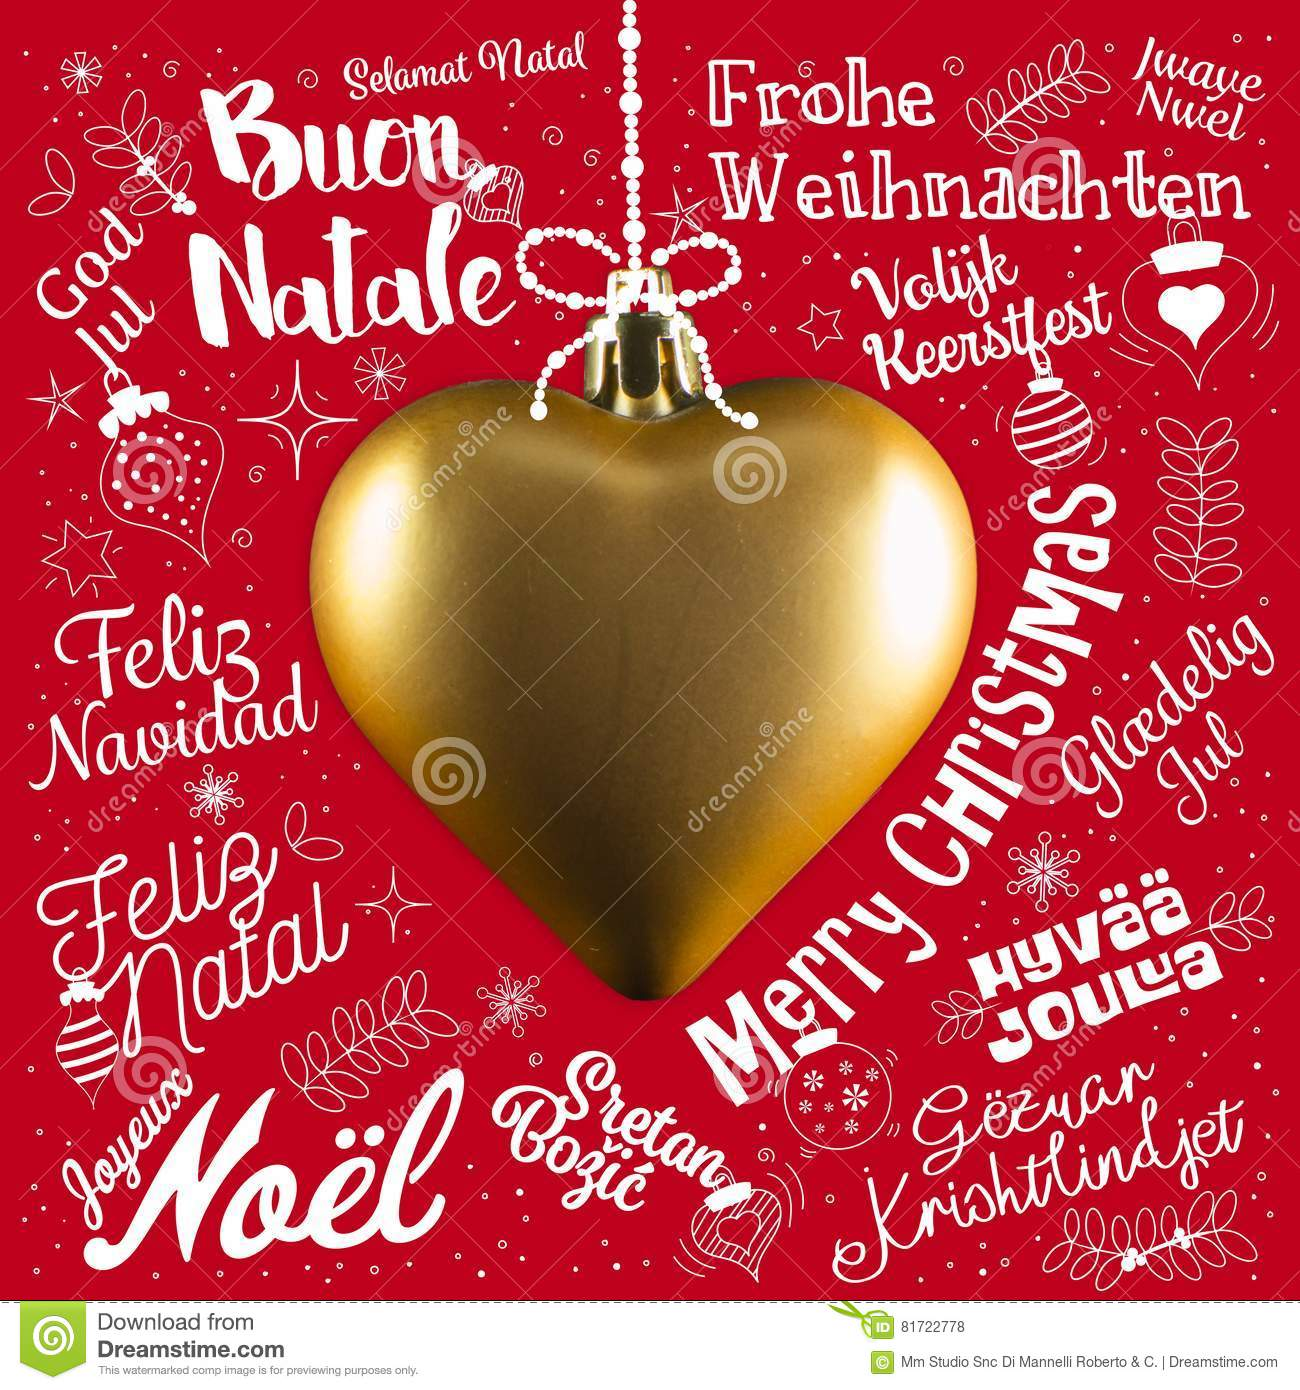 Merry christmas greetings card from world in different languages download merry christmas greetings card from world in different languages stock photo image of greeting m4hsunfo